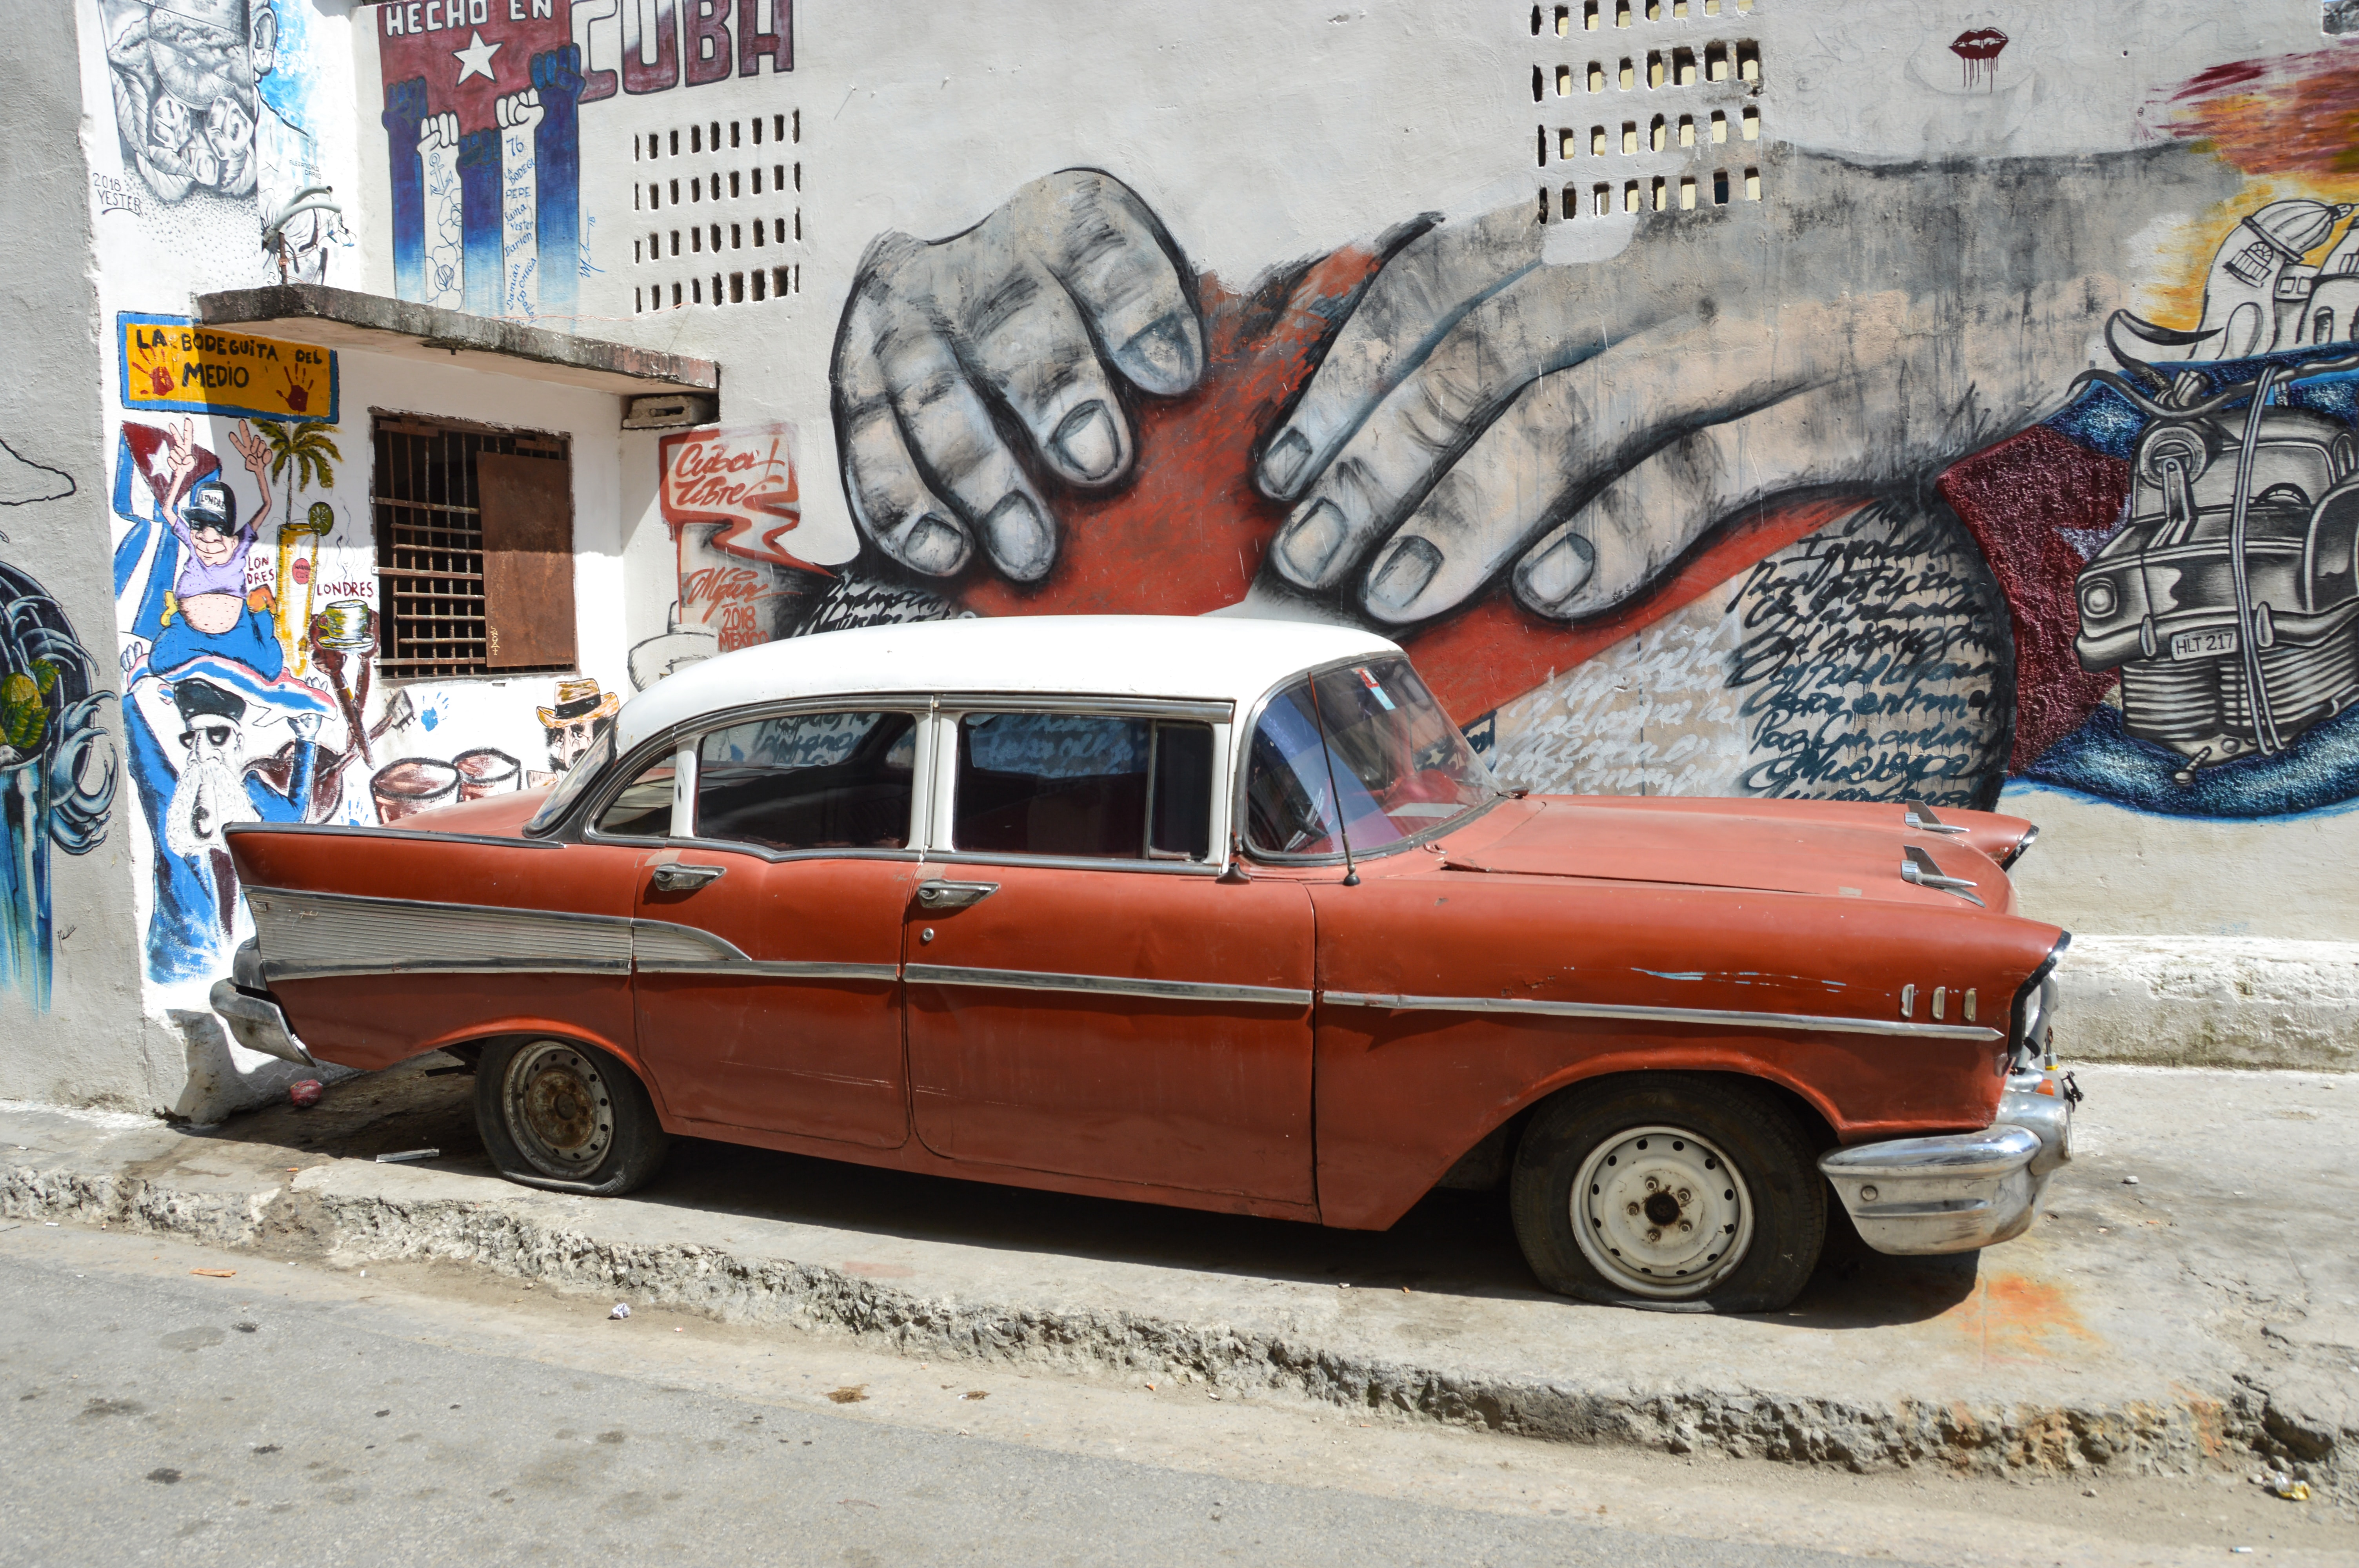 white and red sedan parked near wall with mural